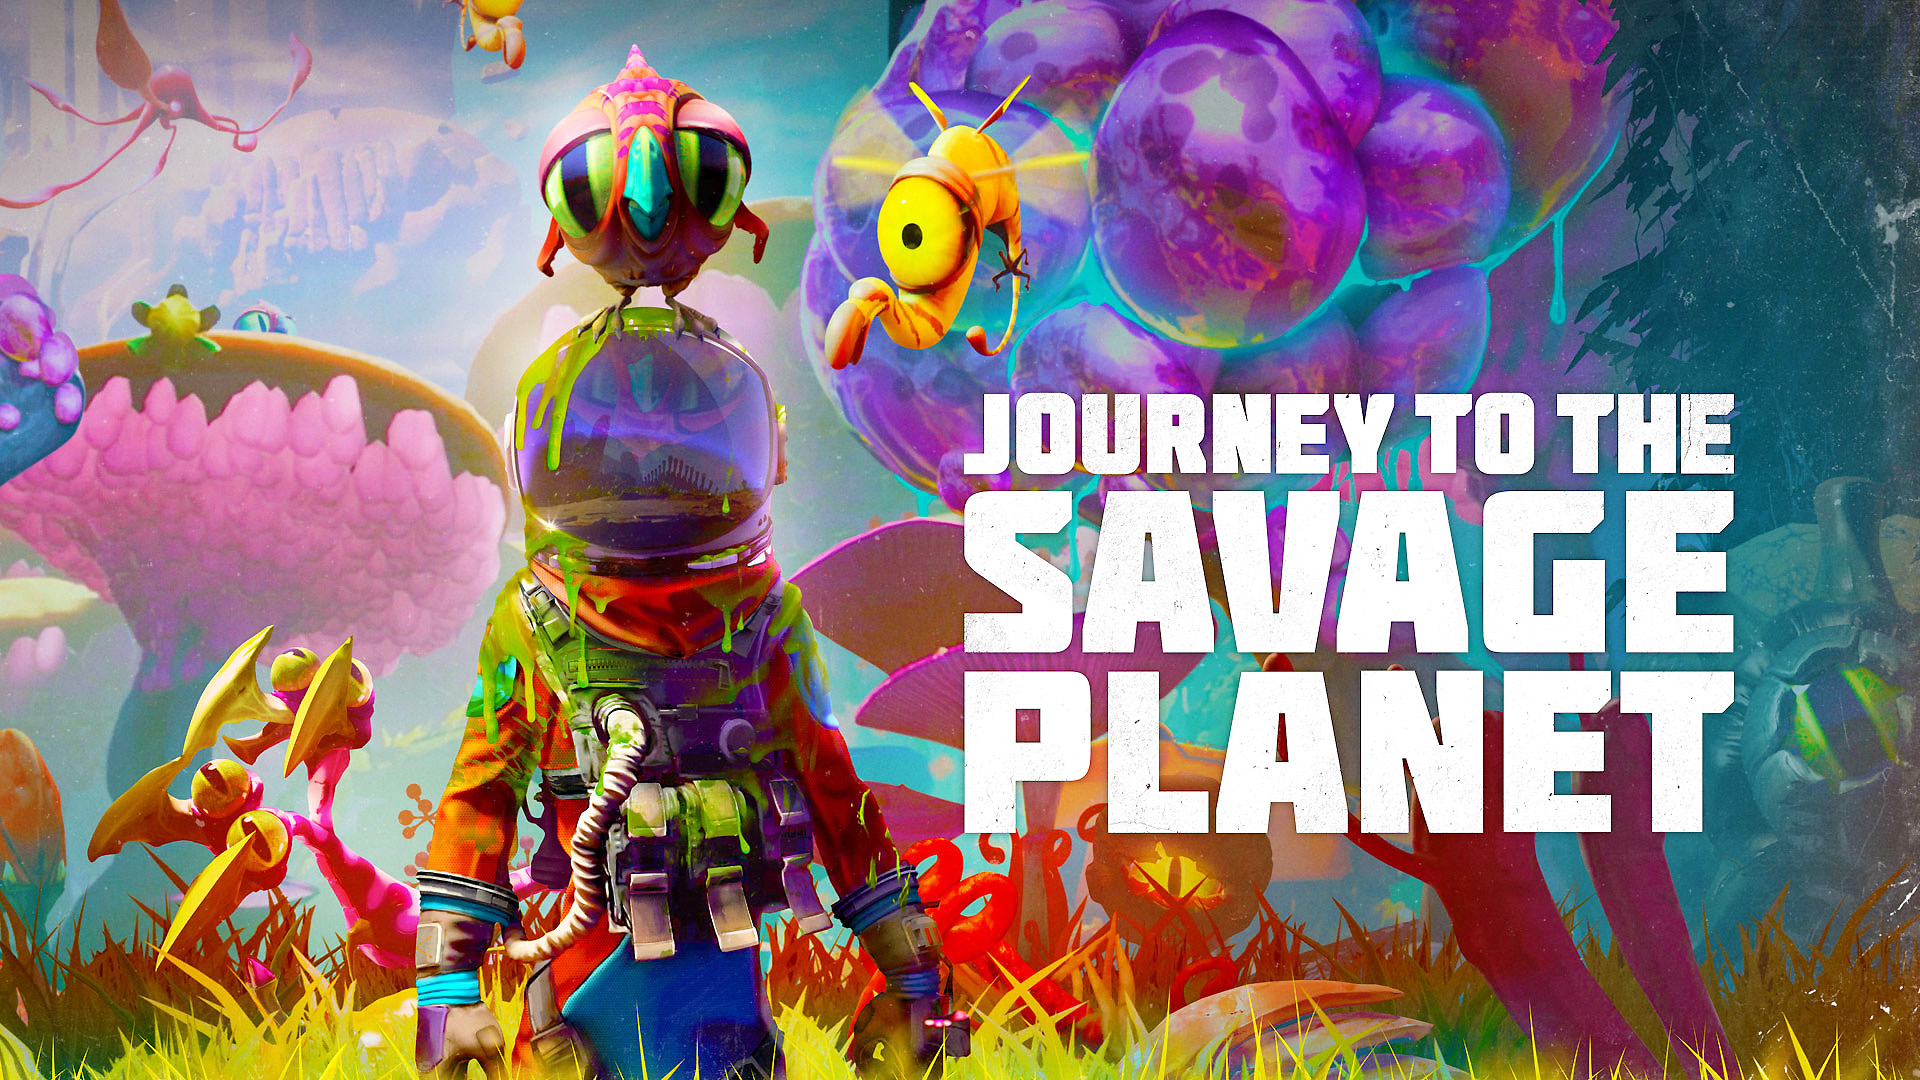 Journey to the Savage Planet. EPIC-ключи (RU+СНГ)